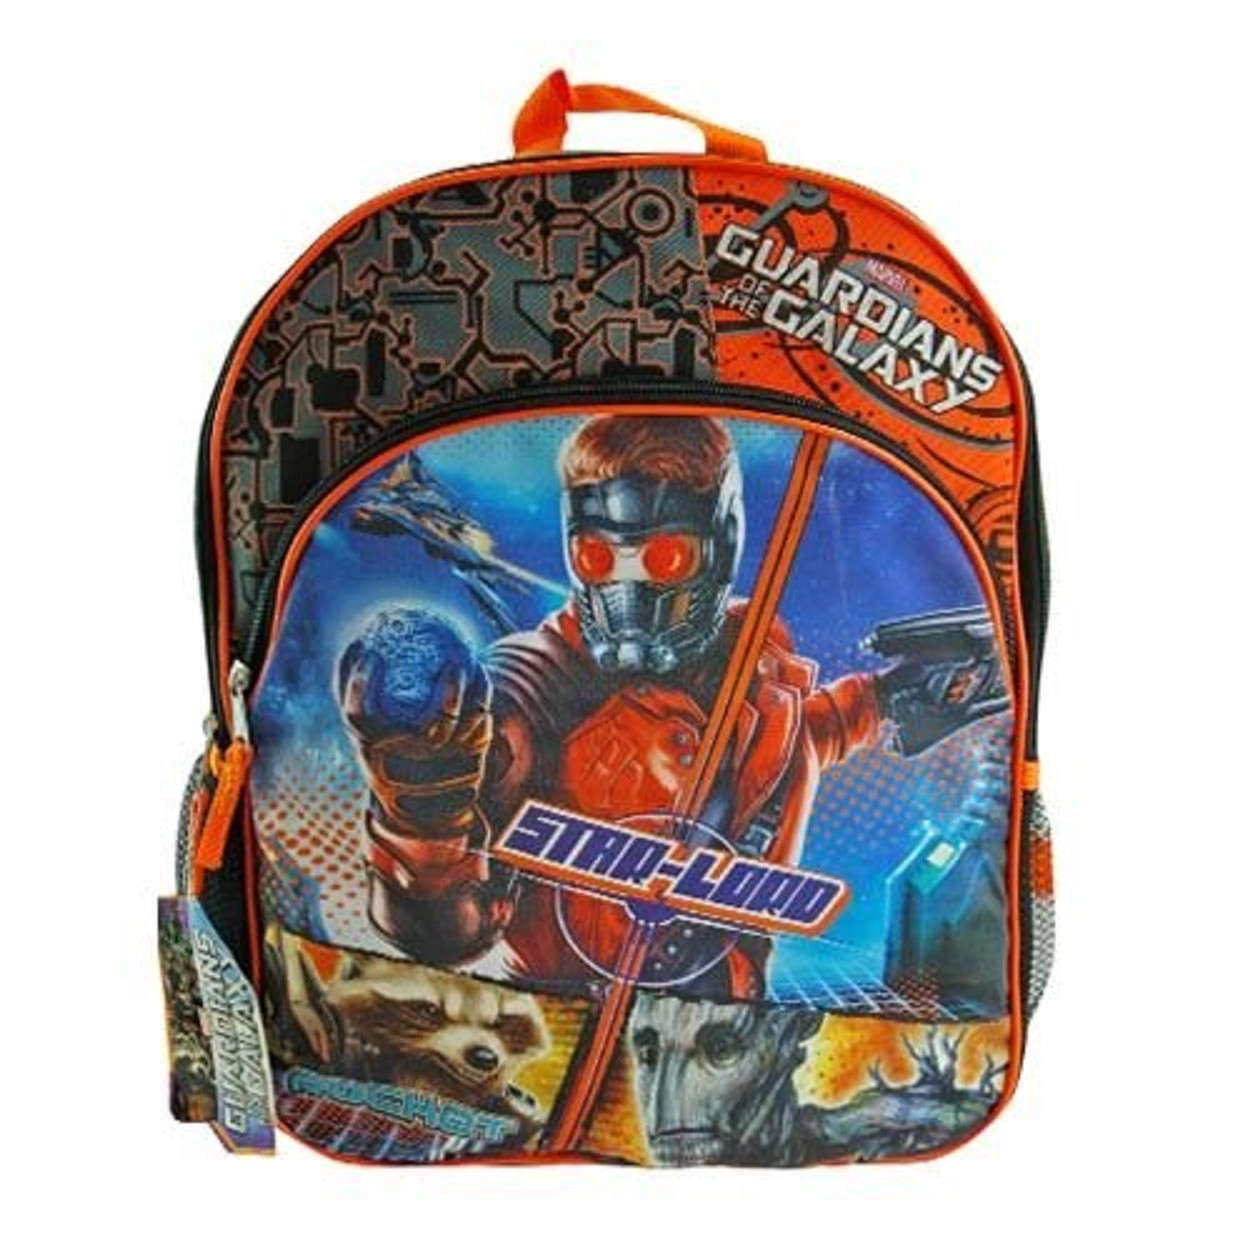 Backpack - Guardians of the Galaxy - Large 16 Inch - Star Lord